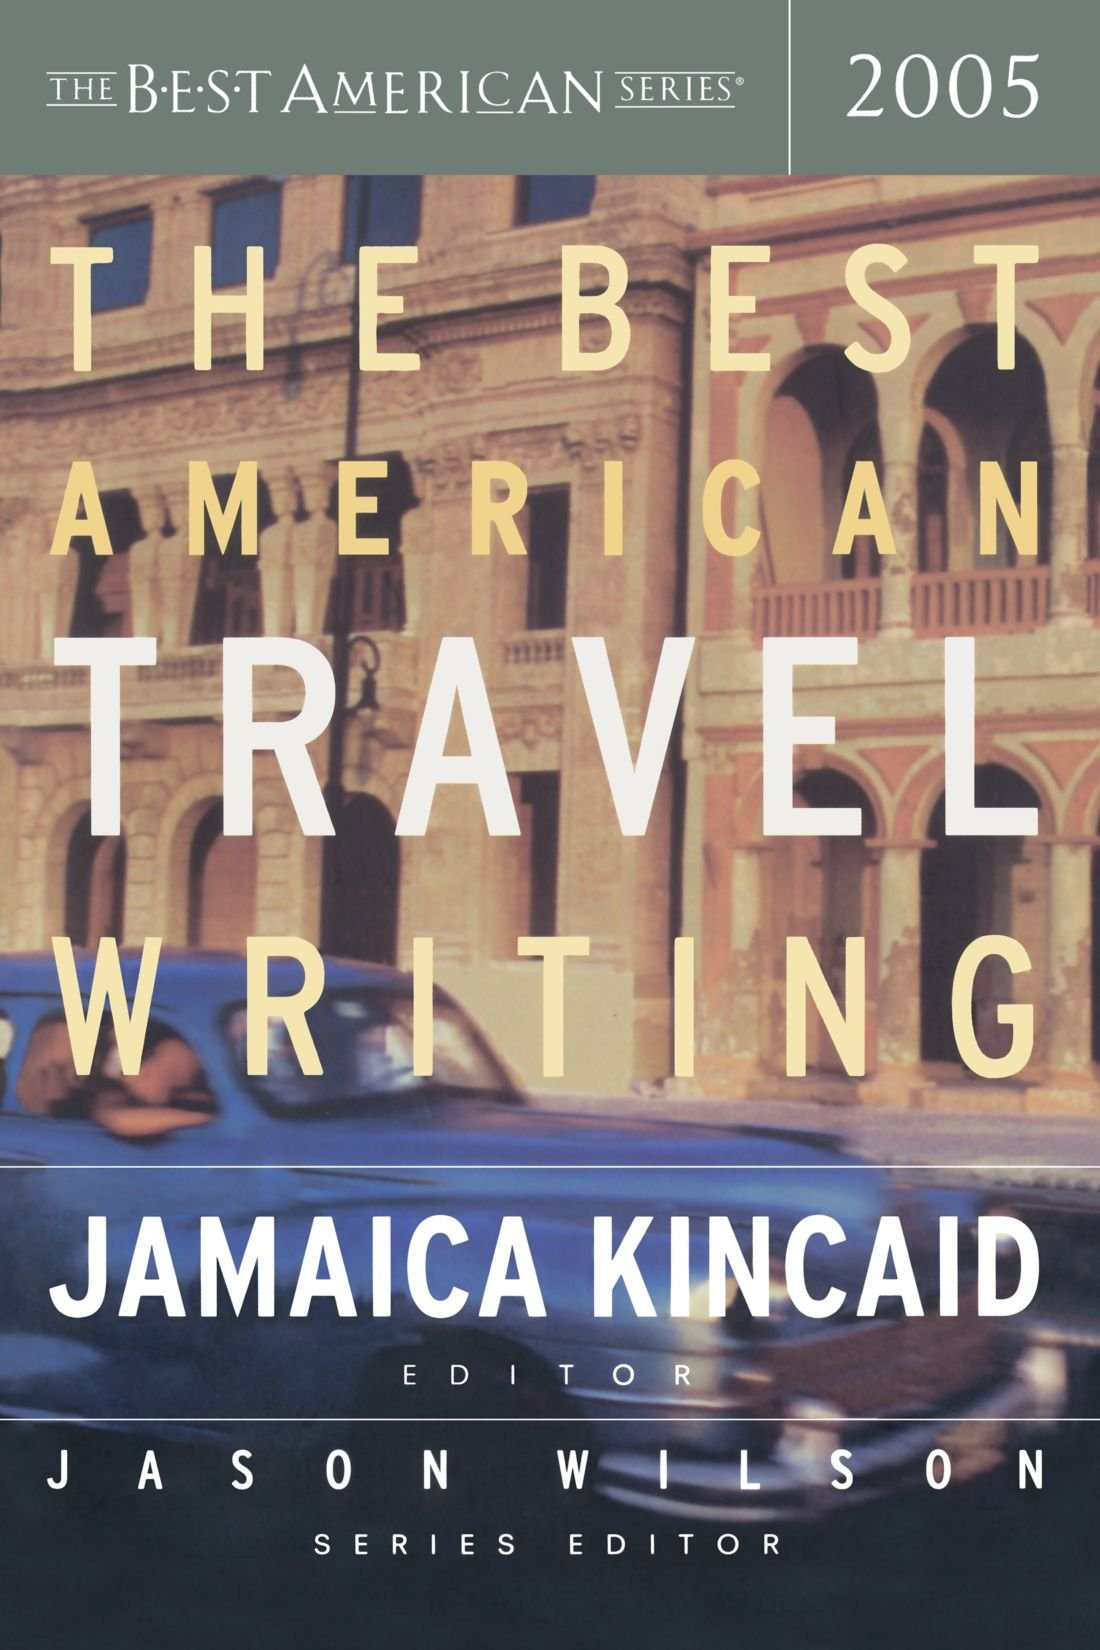 the best american travel writing the best american series the best american travel writing 2005 the best american series jason wilson kincaid 0046442369527 com books